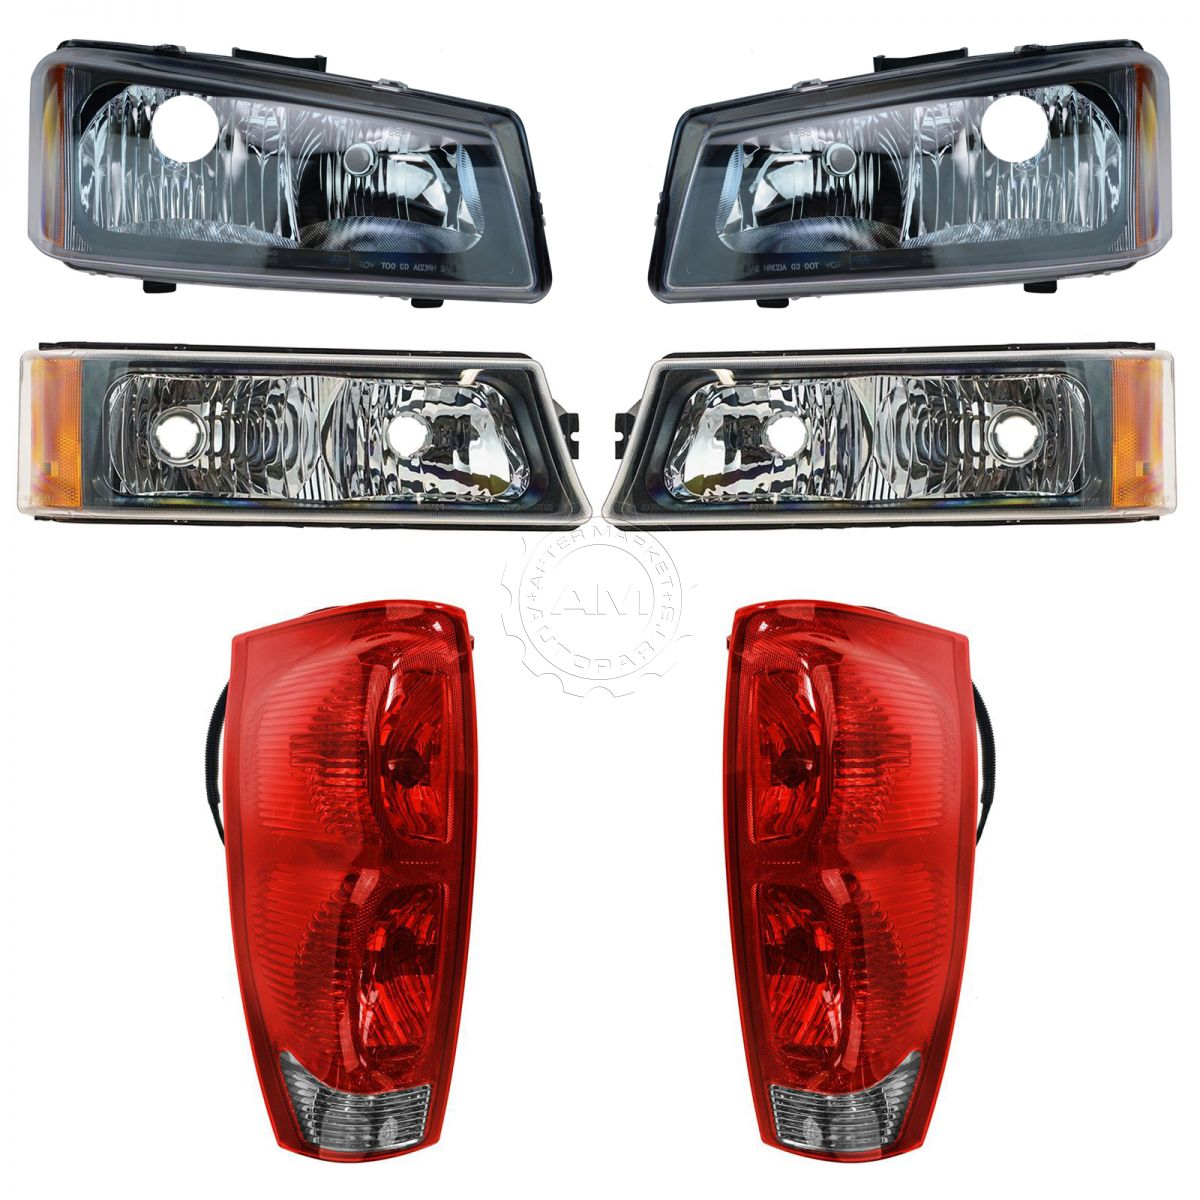 hight resolution of headlight tail light parking lamp front rear kit for 02 06 chevy avalanche new